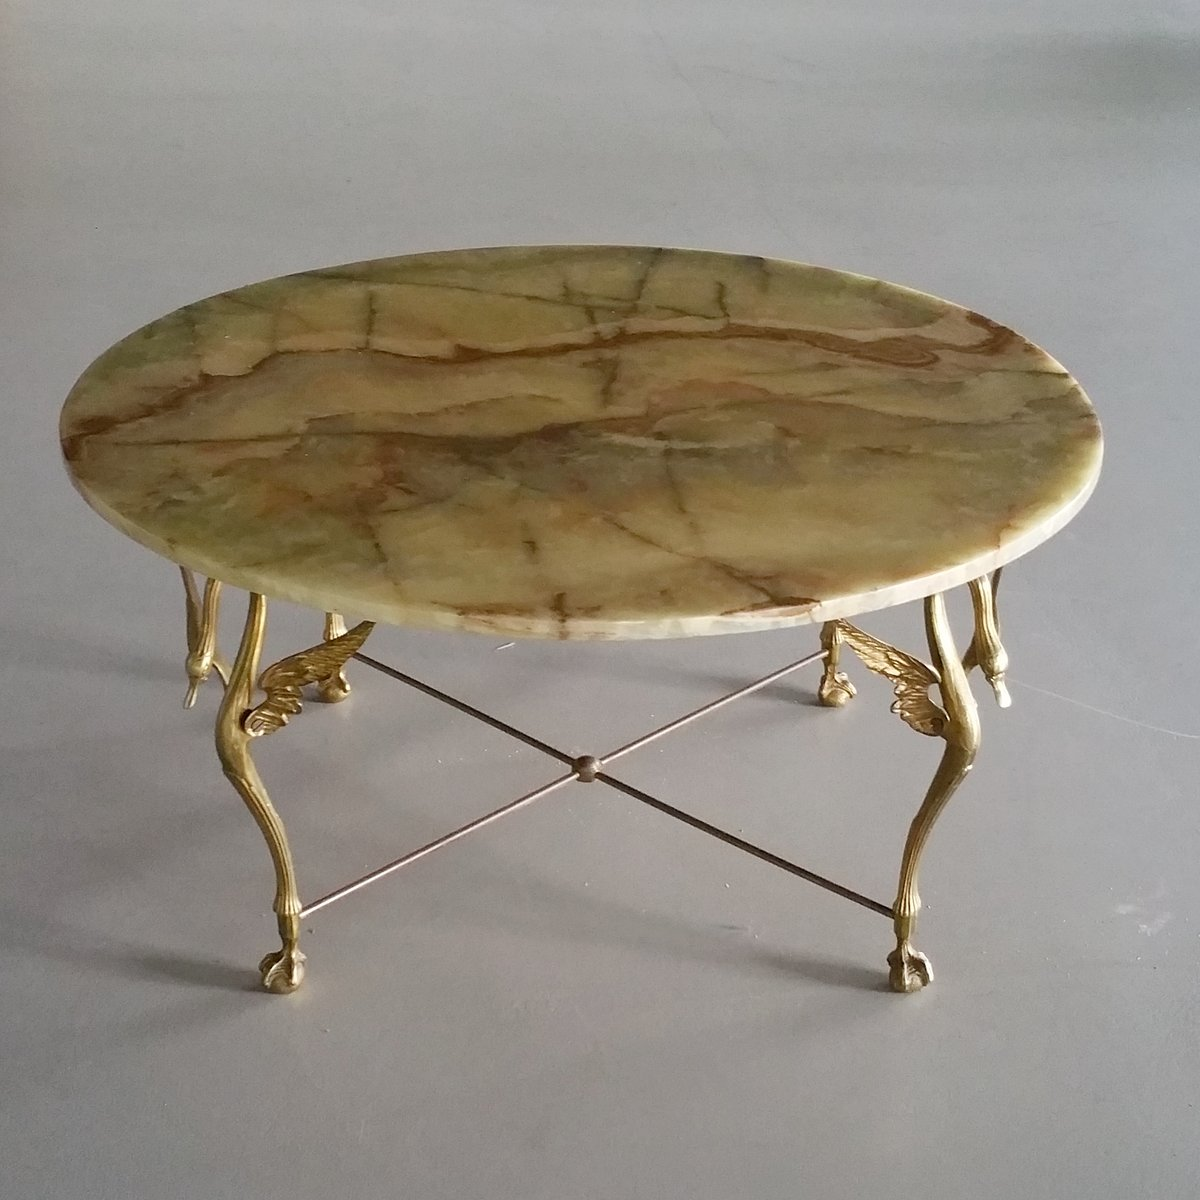 Brass Swan Coffee Table with Onyx Top, 1960s for sale at